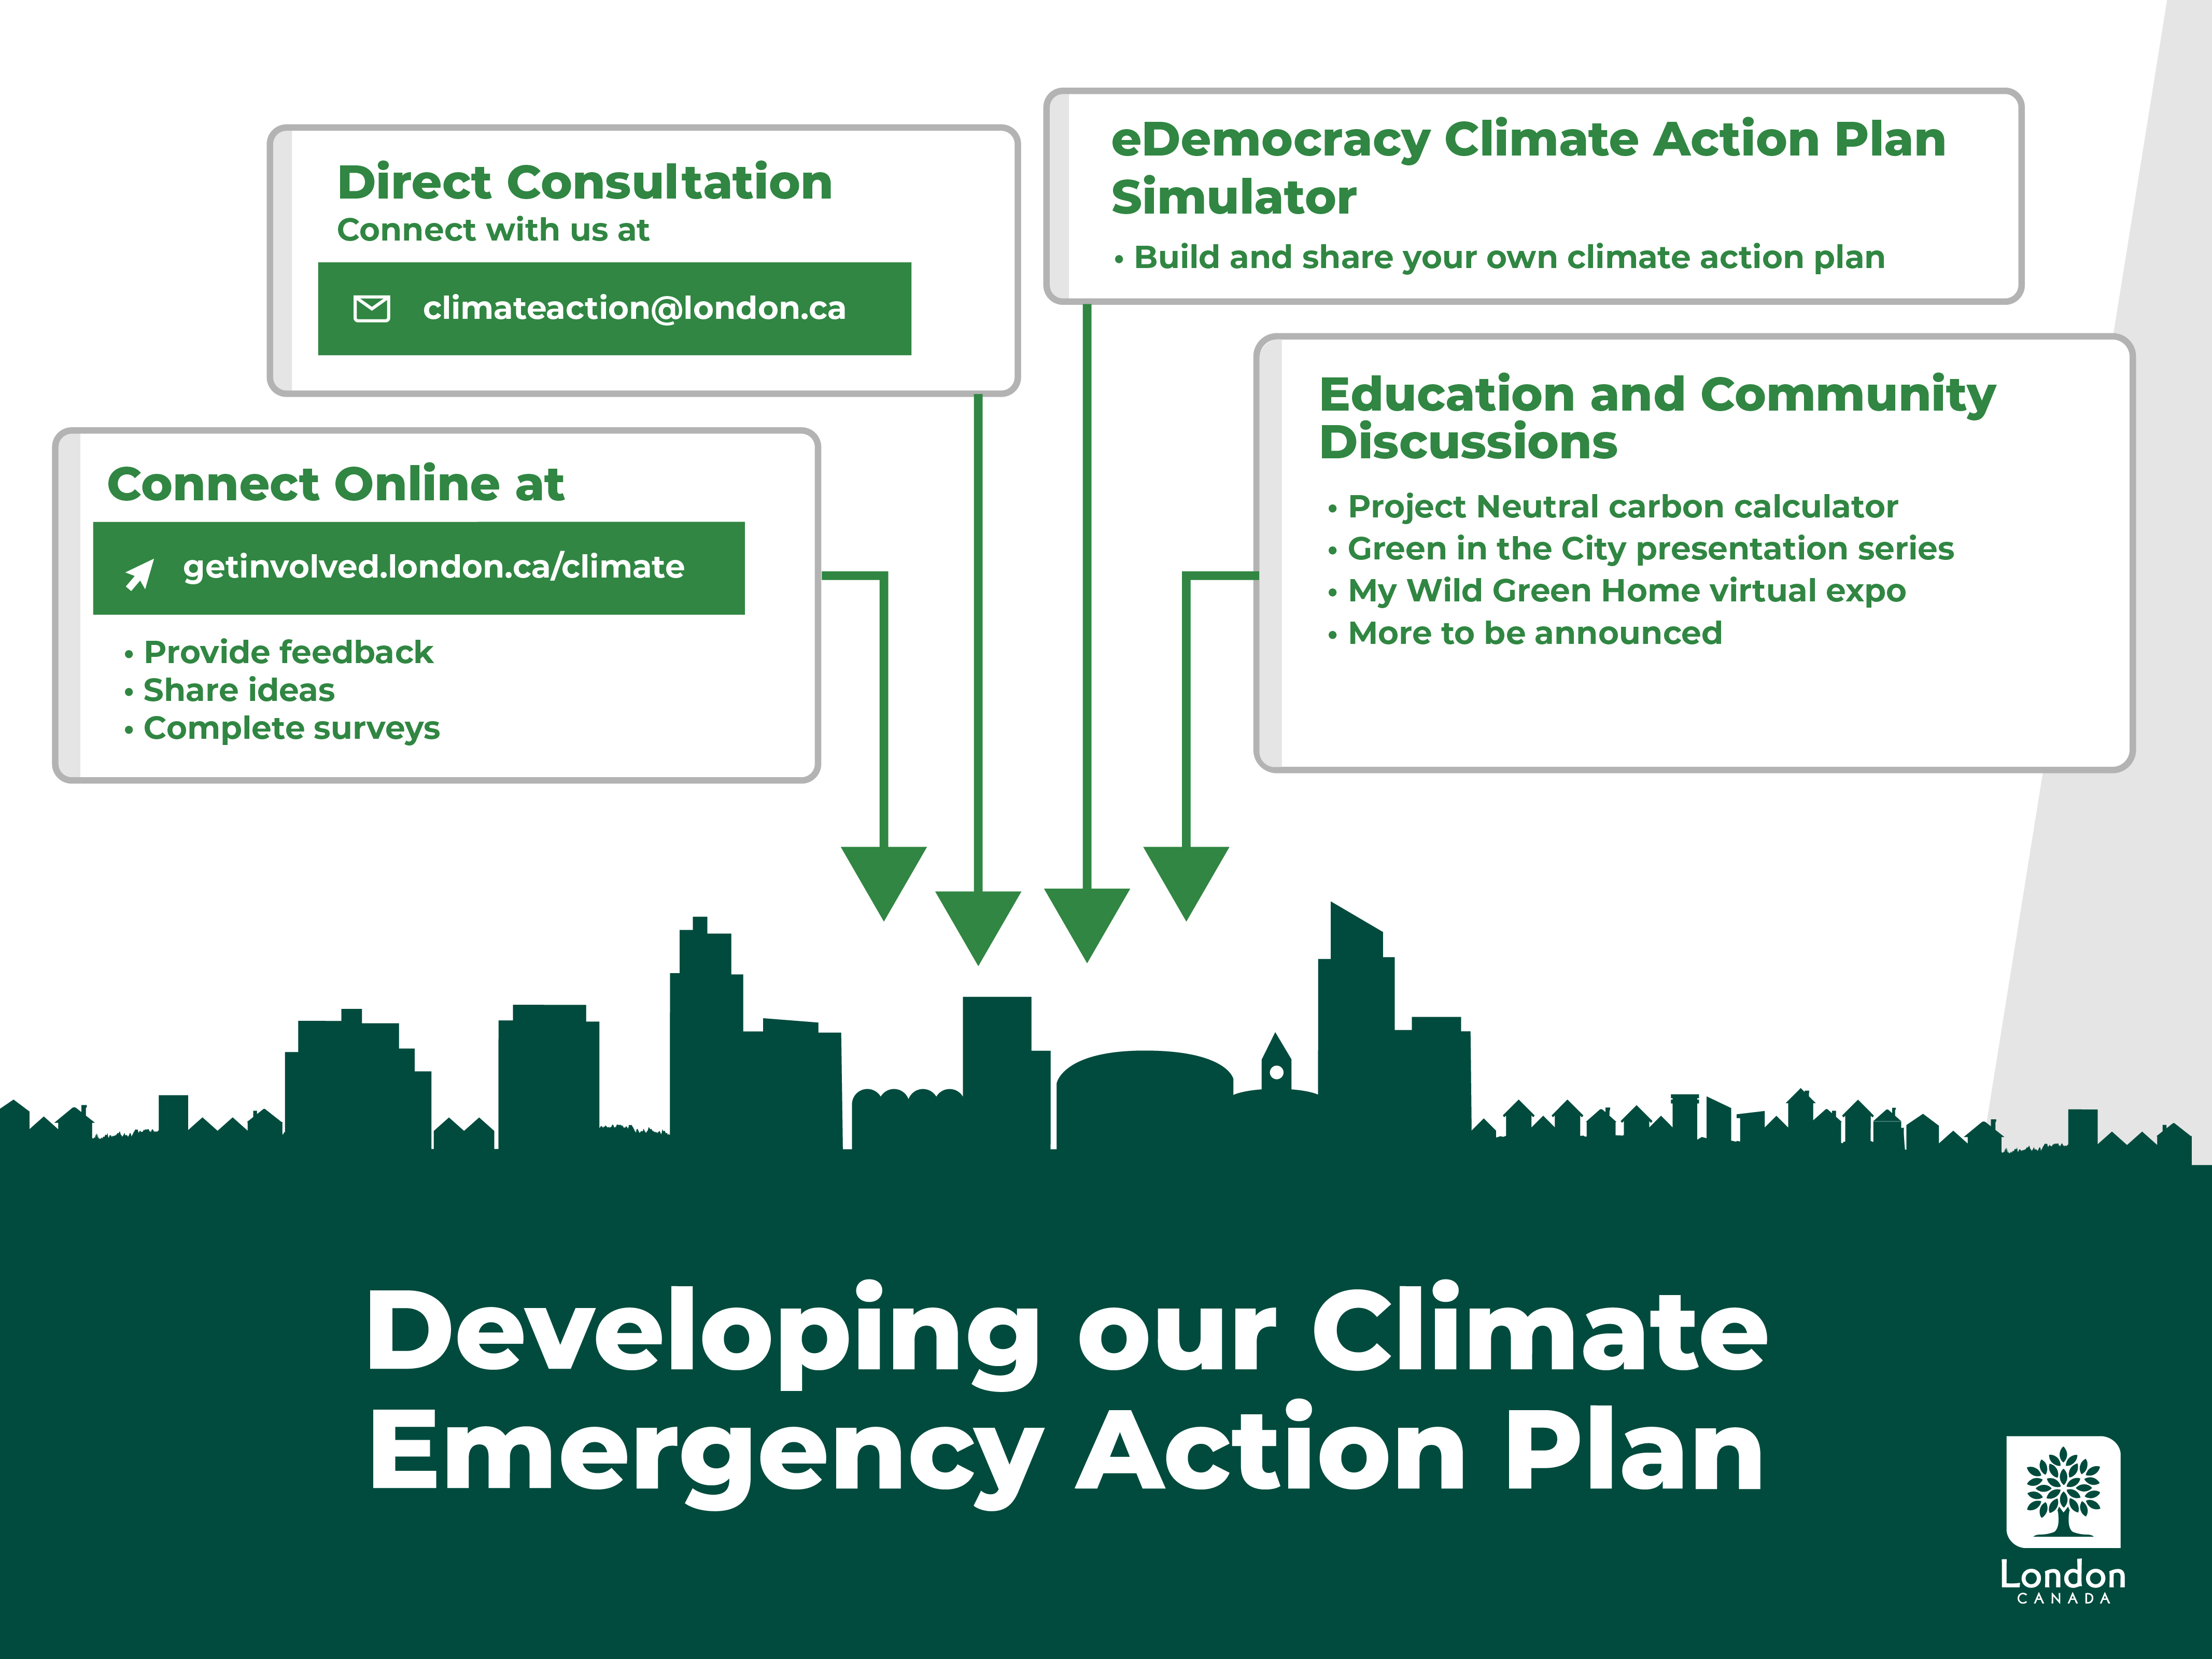 An illustration of the different engagement opportunities for the Climate Emergency Action Plan.